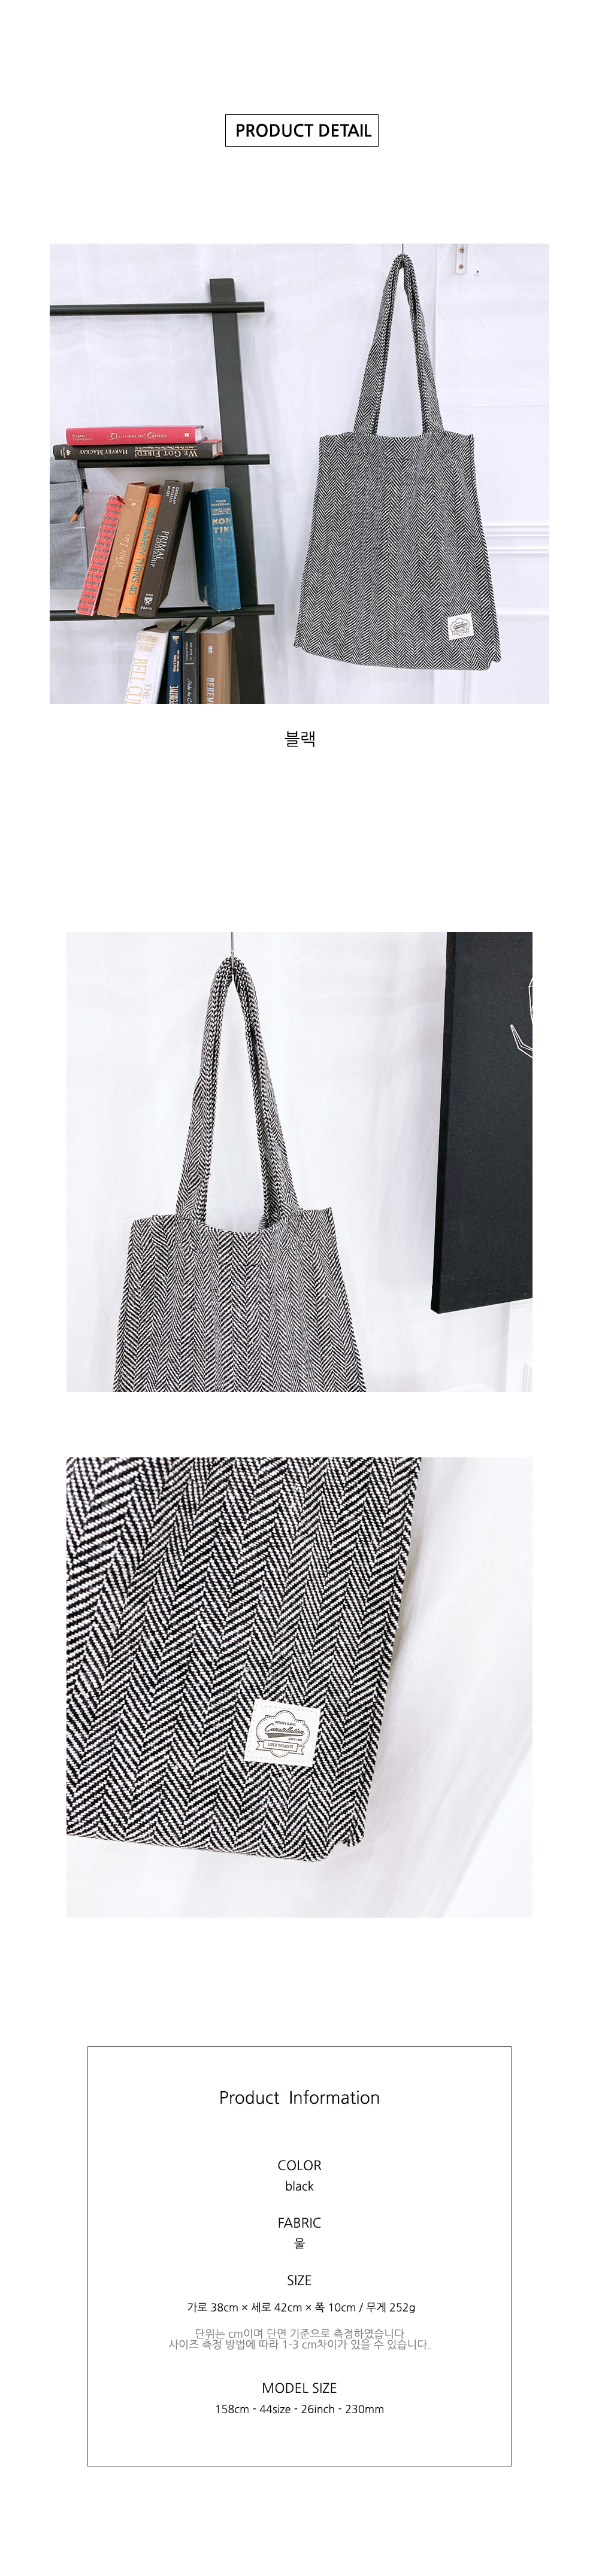 Herringbone Eco Bag, Shoulder Bag B#CS024